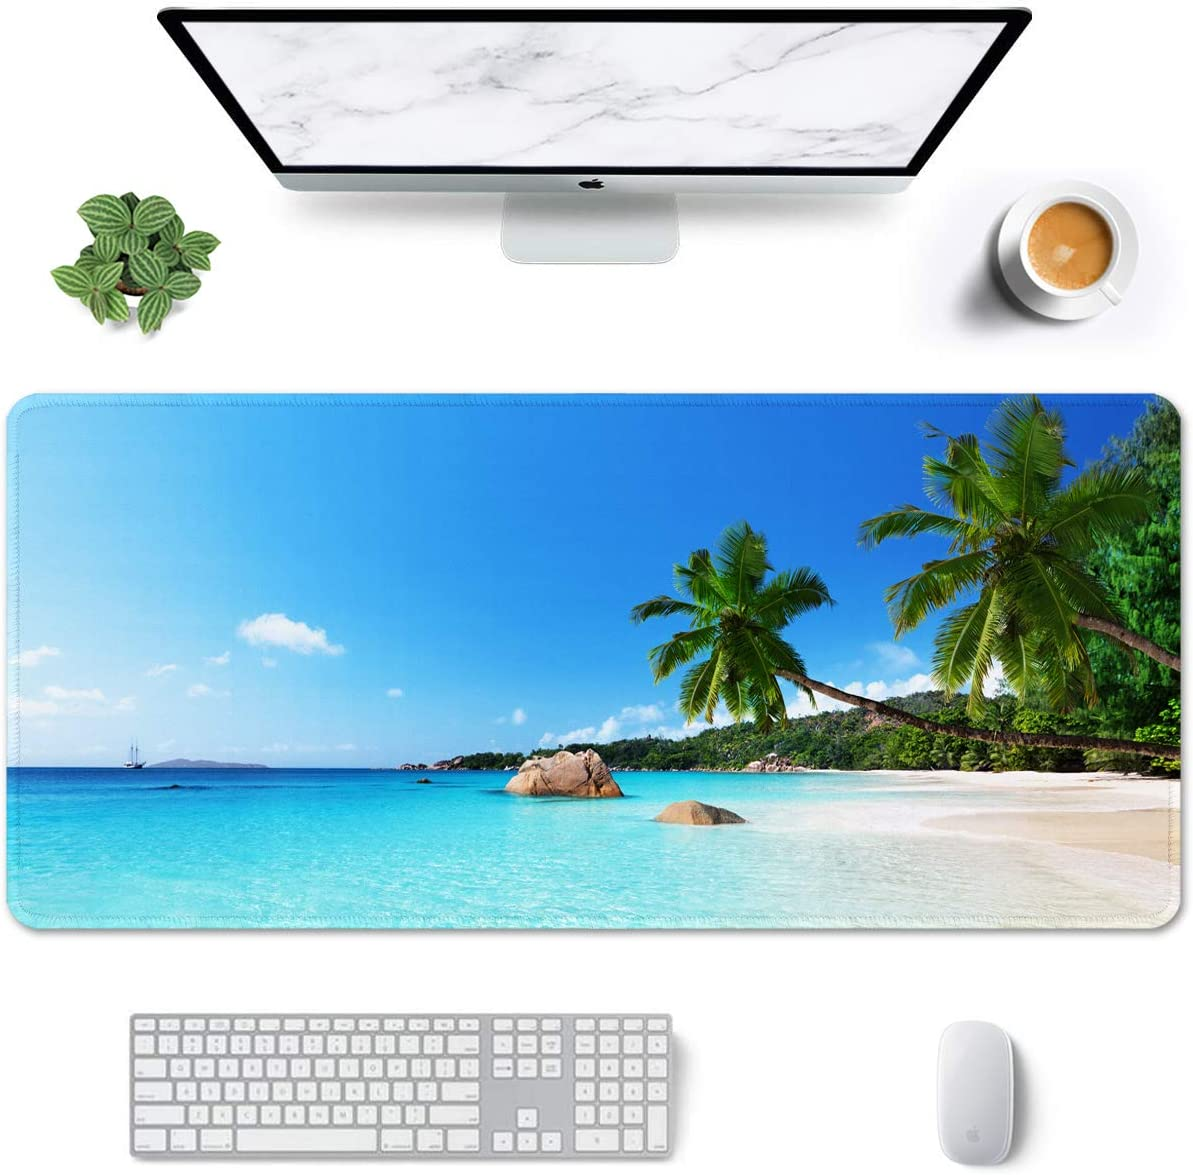 """Auhoahsil Large Mouse Pad, Full Desk XXL Extended Gaming Mouse Pad 35"""" X 15"""", Waterproof Desk Mat with Stitched Edges, Non-Slip Laptop Computer Keyboard Mousepad for Office and Home, Beach Design"""